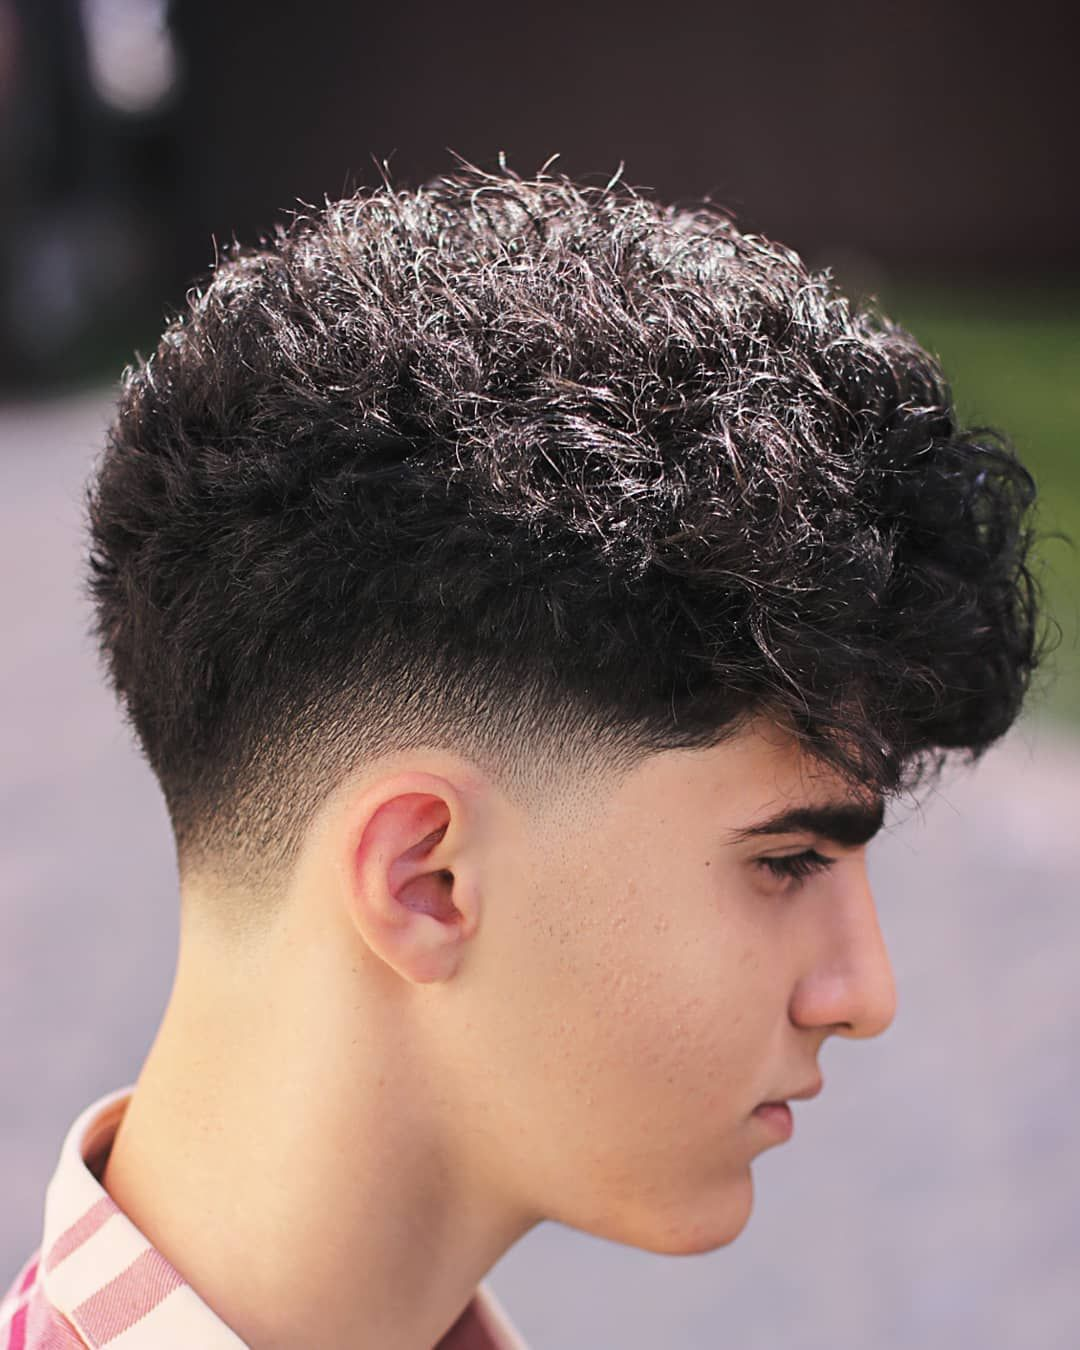 22 Drop Fade Haircuts For 2020 Cool Ways To Get The Look In 2020 Fade Haircut Drop Fade Haircut Curly Hair Fade